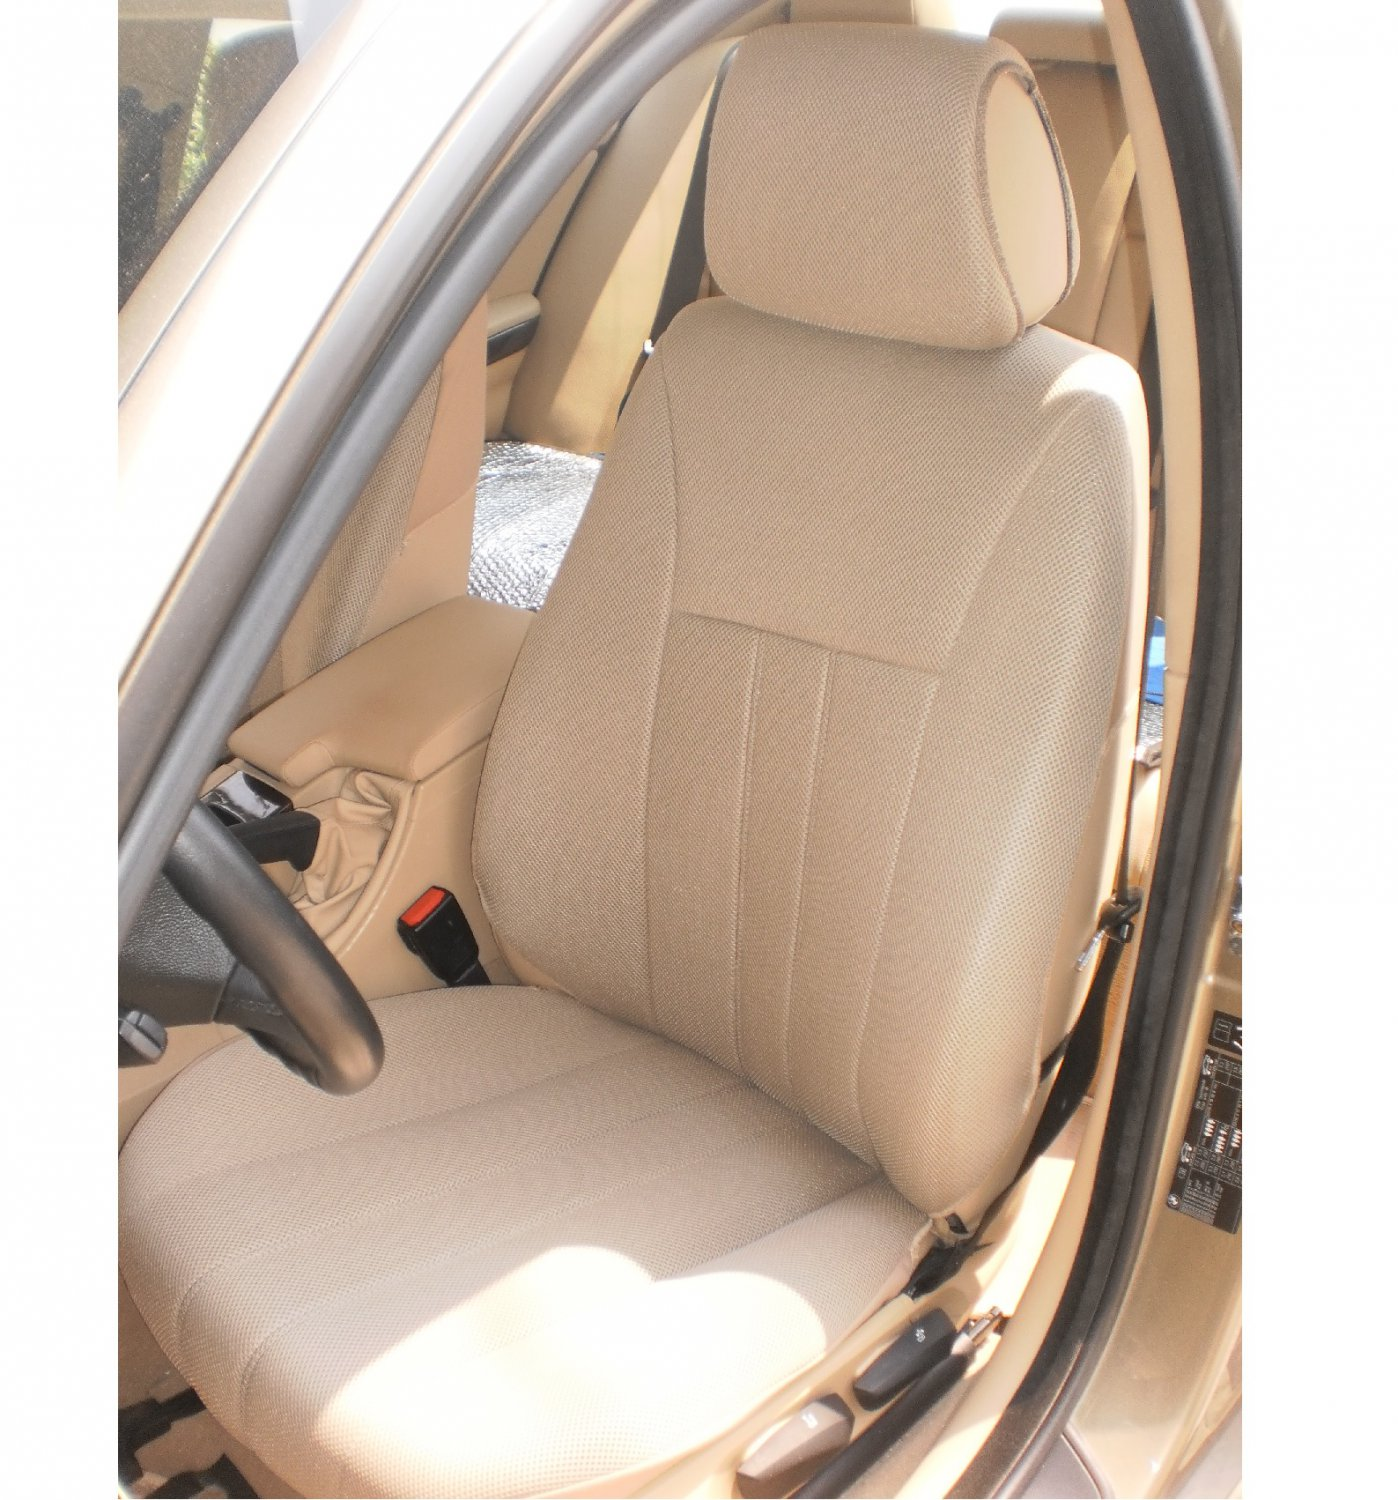 Classic Car Seat Cover Hardware